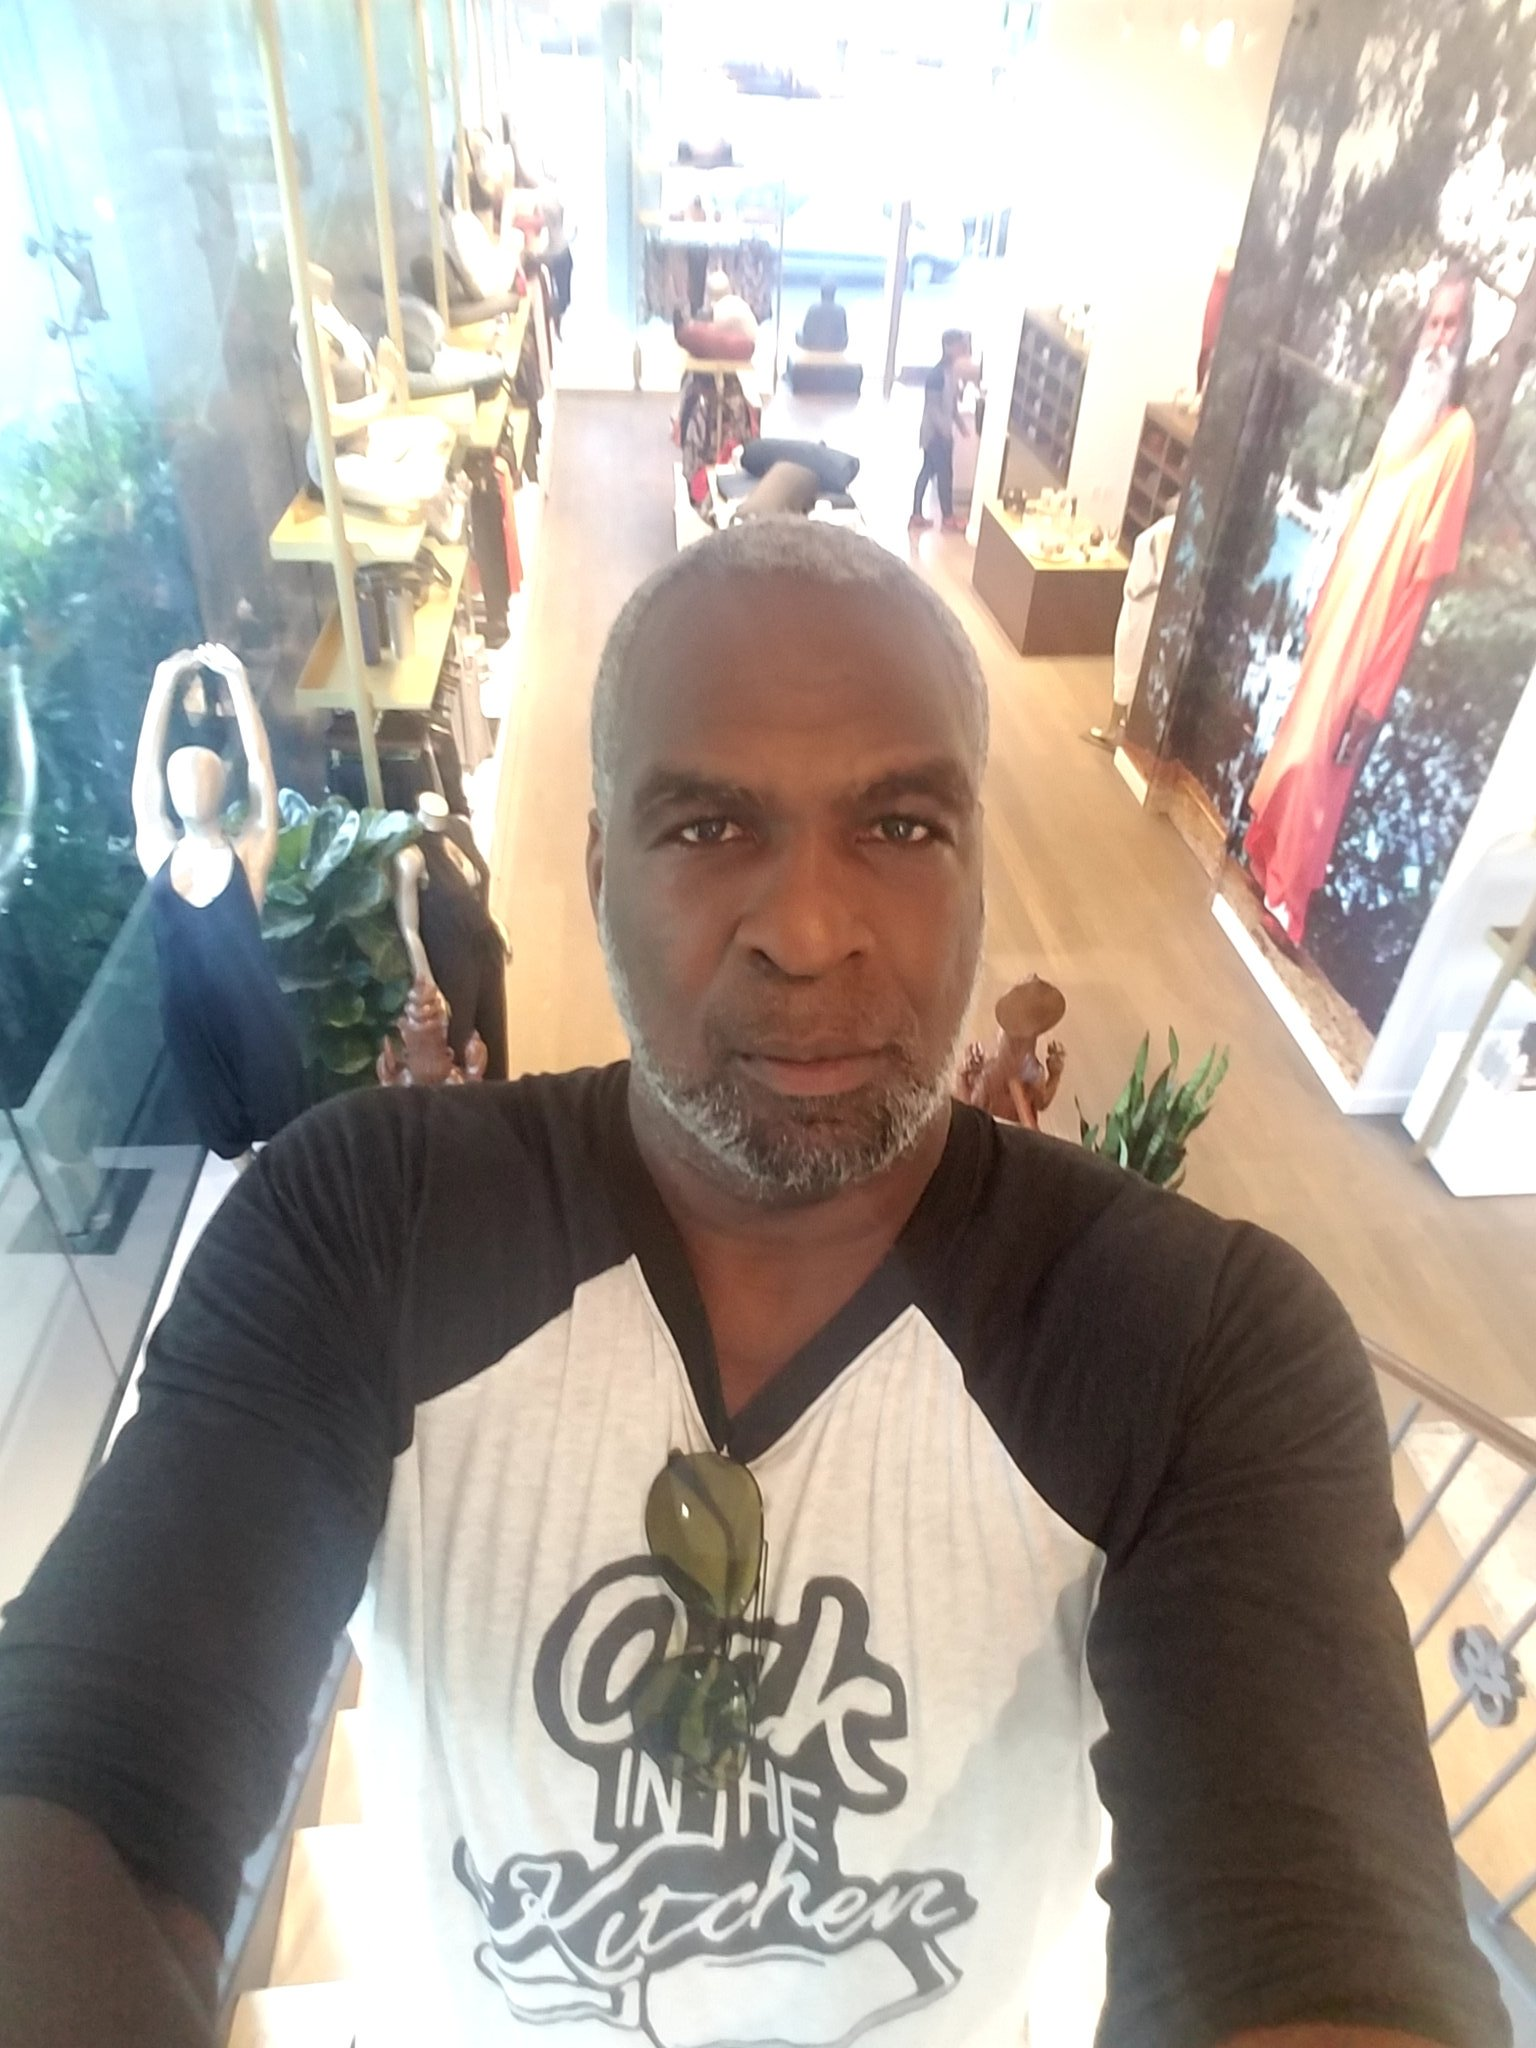 RT @CharlesOakley34: Just had great a class @TantrisYoga felt great! Thanks @UncleRUSH https://t.co/S1XJsUXM09